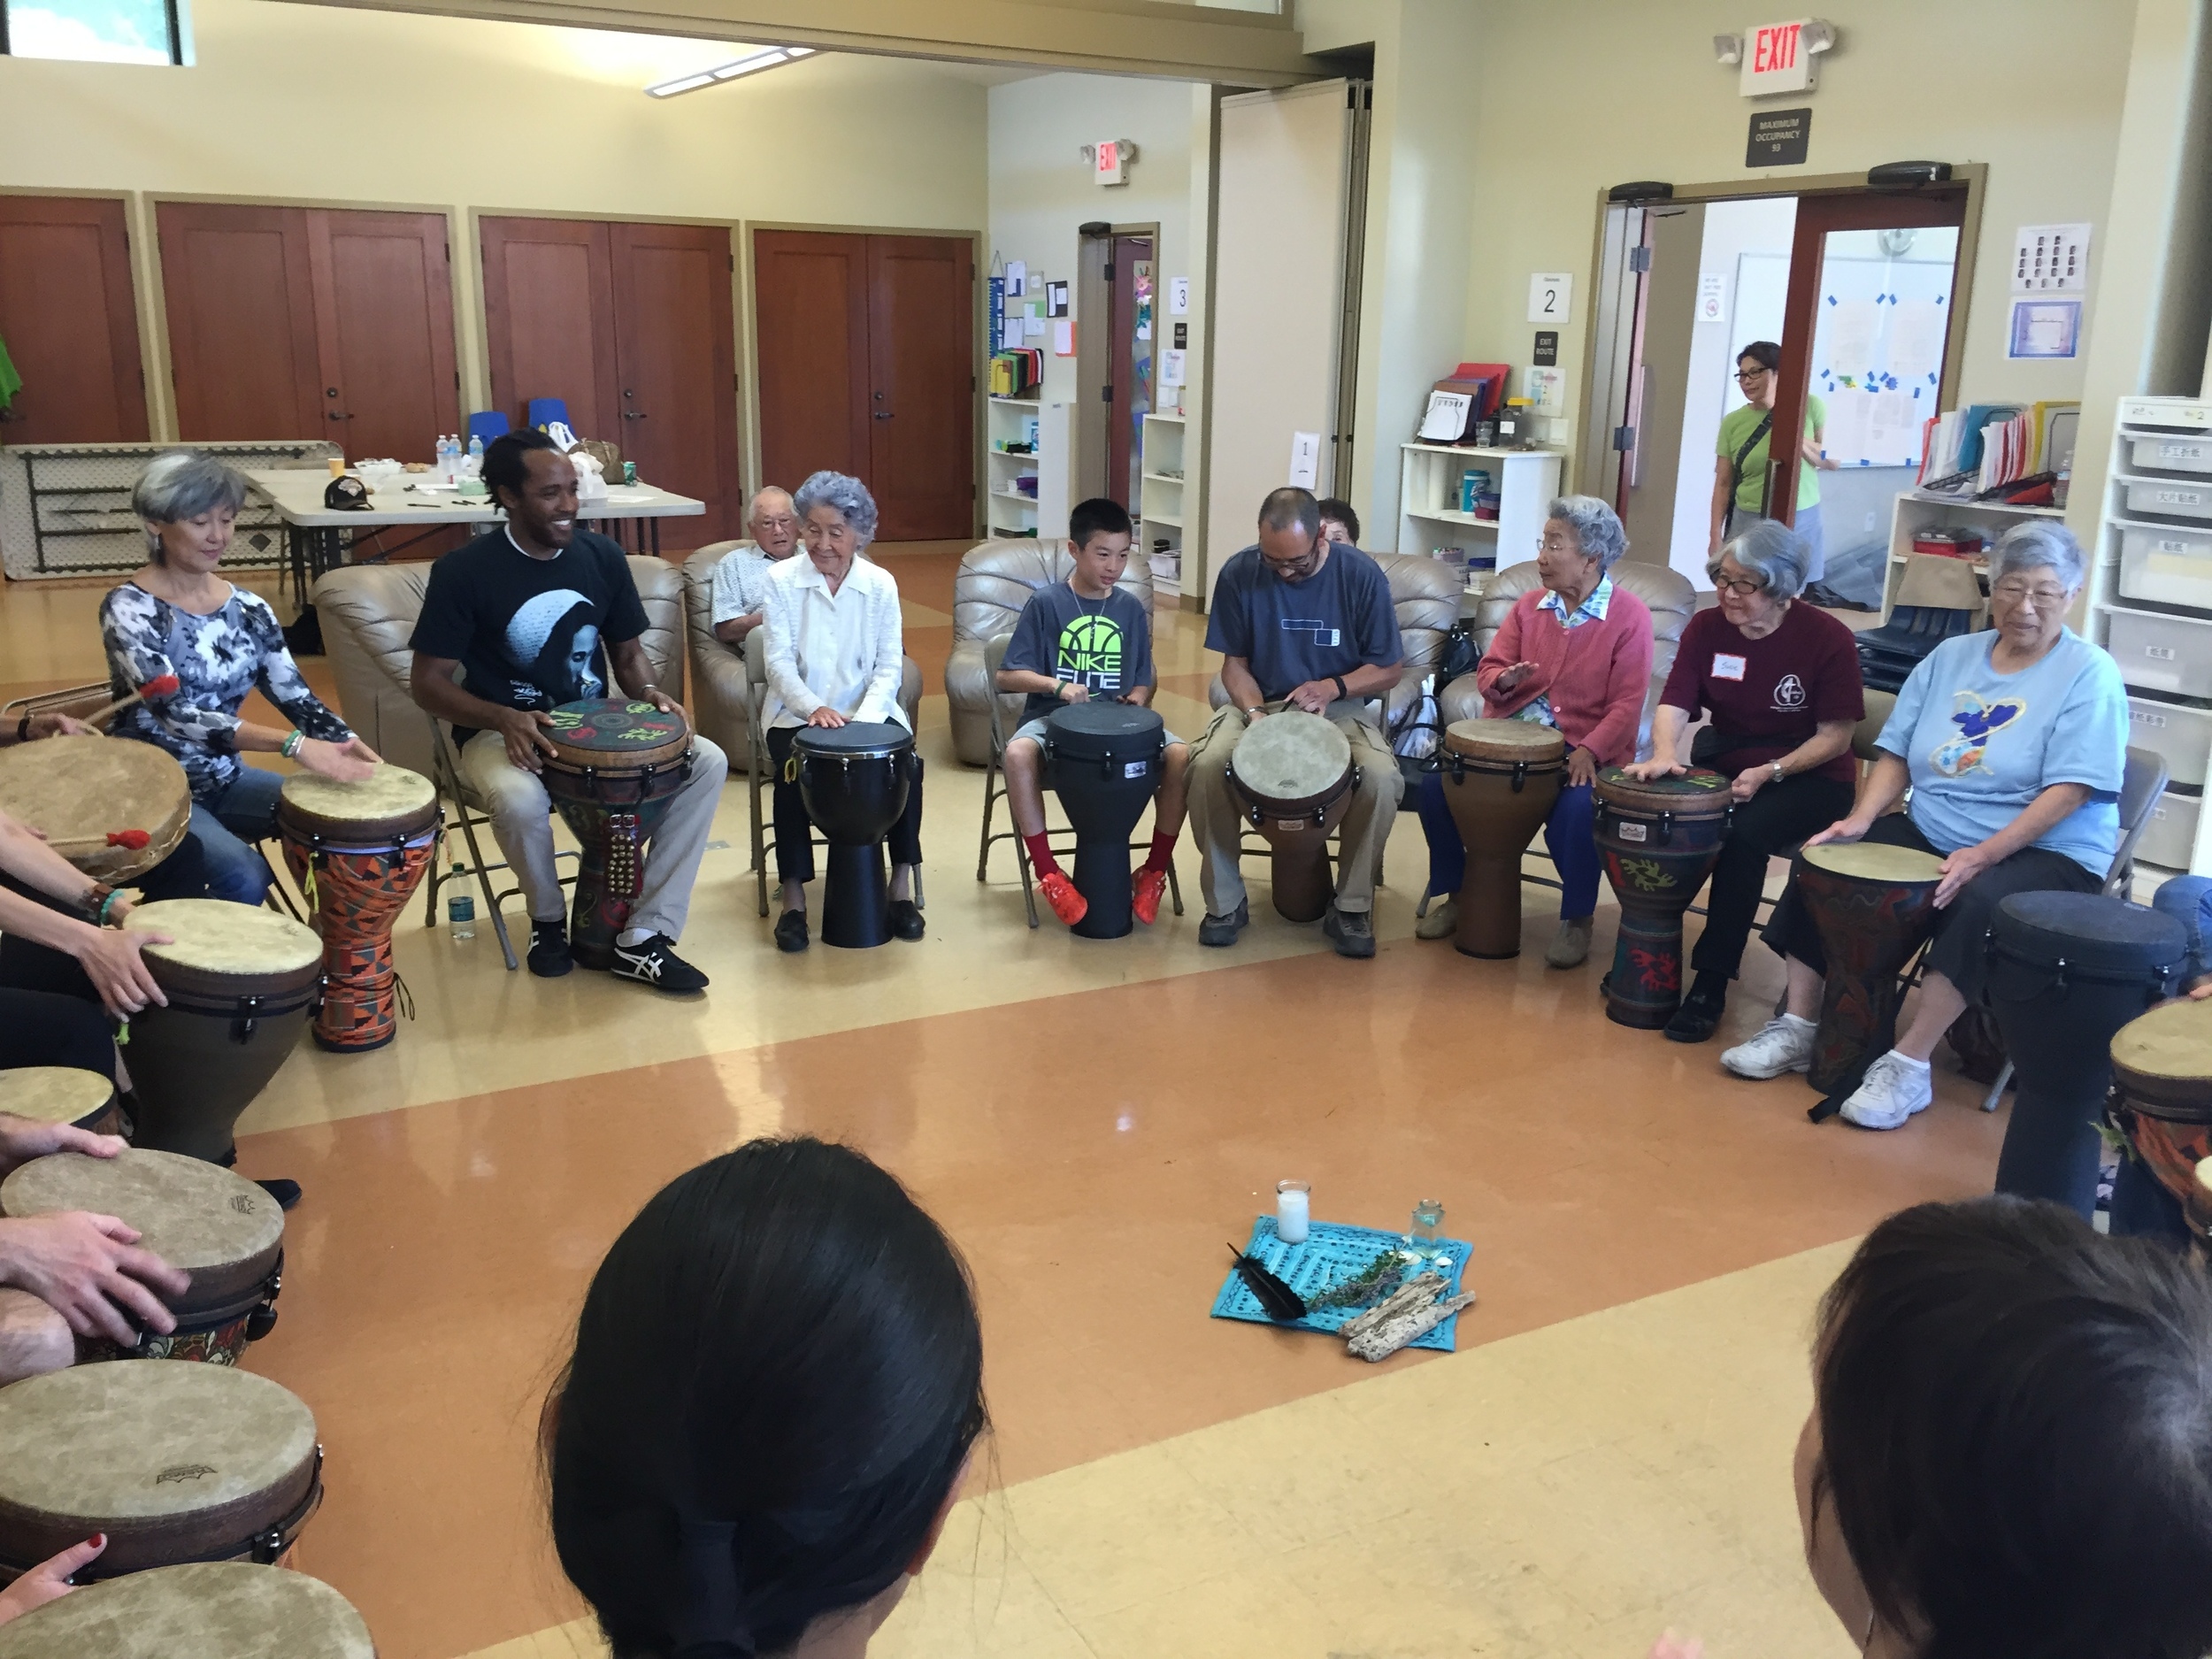 Intergenerational drumming circle led by sekayi edwards, director of CSL's Creative expression program